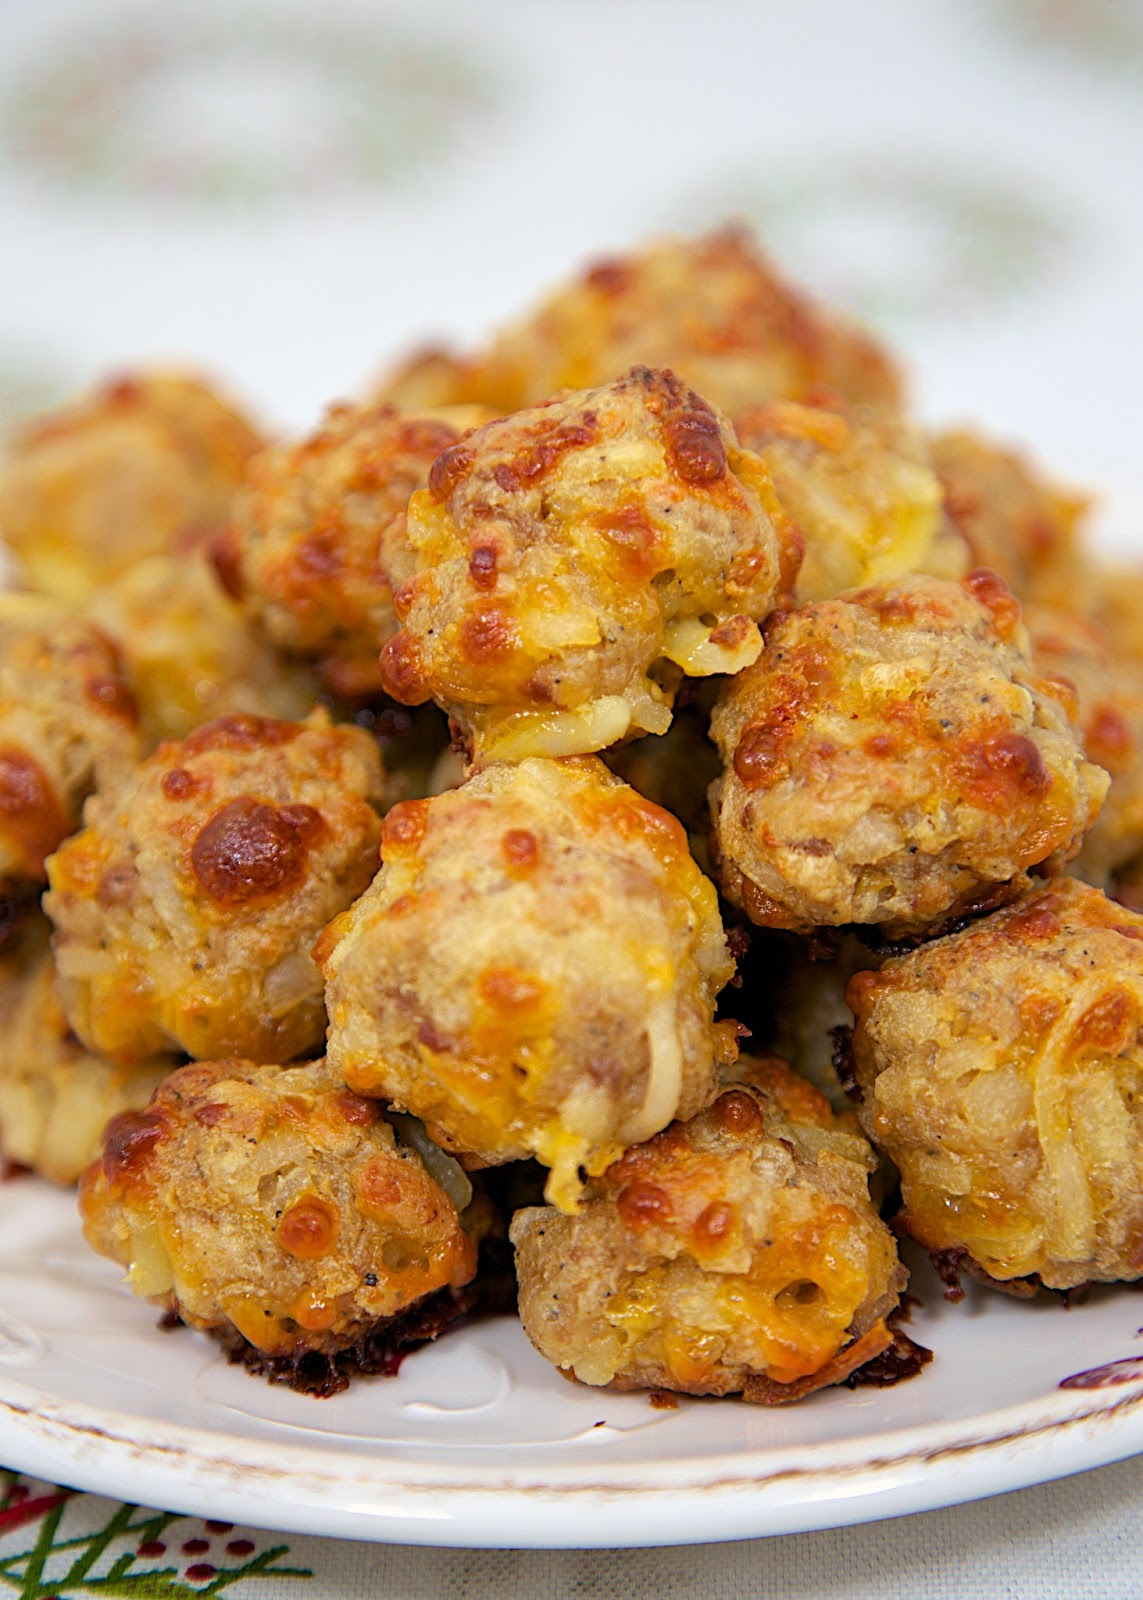 Sausage & Hash Brown Balls - mix together and freezer for a quick snack. Always a HUGE HIT! Can freeze for later. Great for breakfast or at parties. There are never any left!